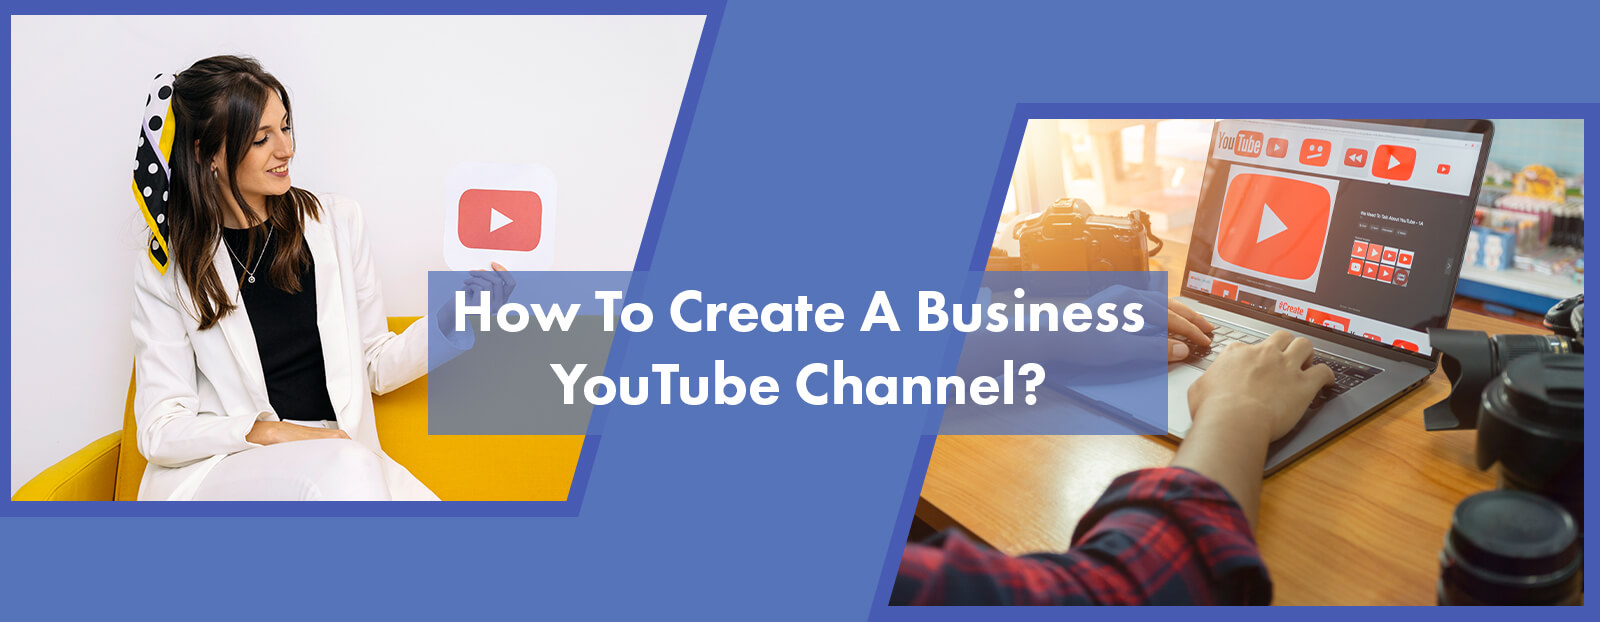 How To Create A Business YouTube Channel?